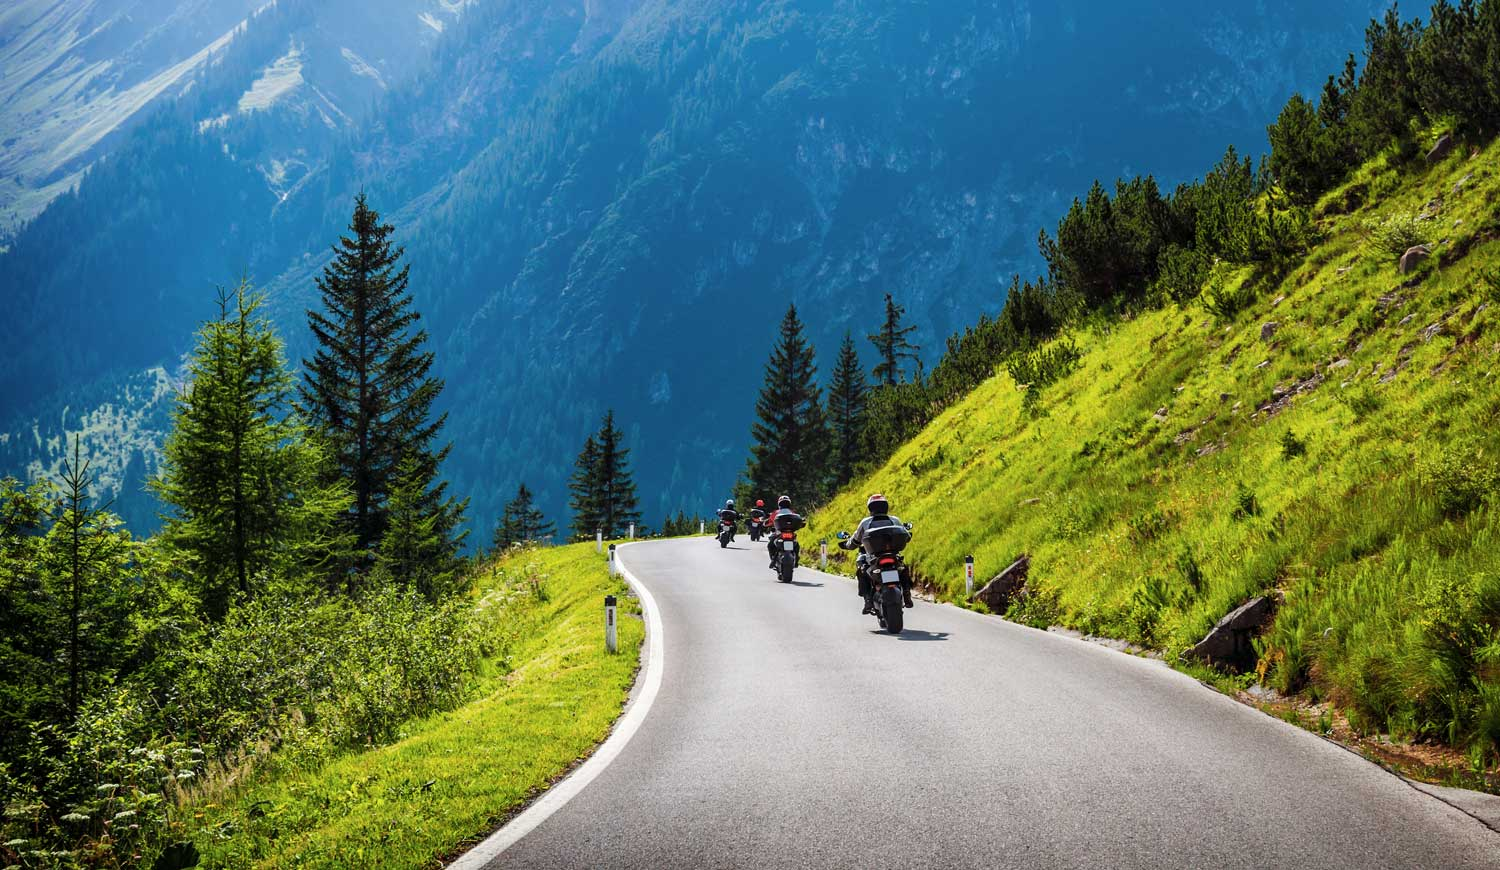 Bikers on a mountain road